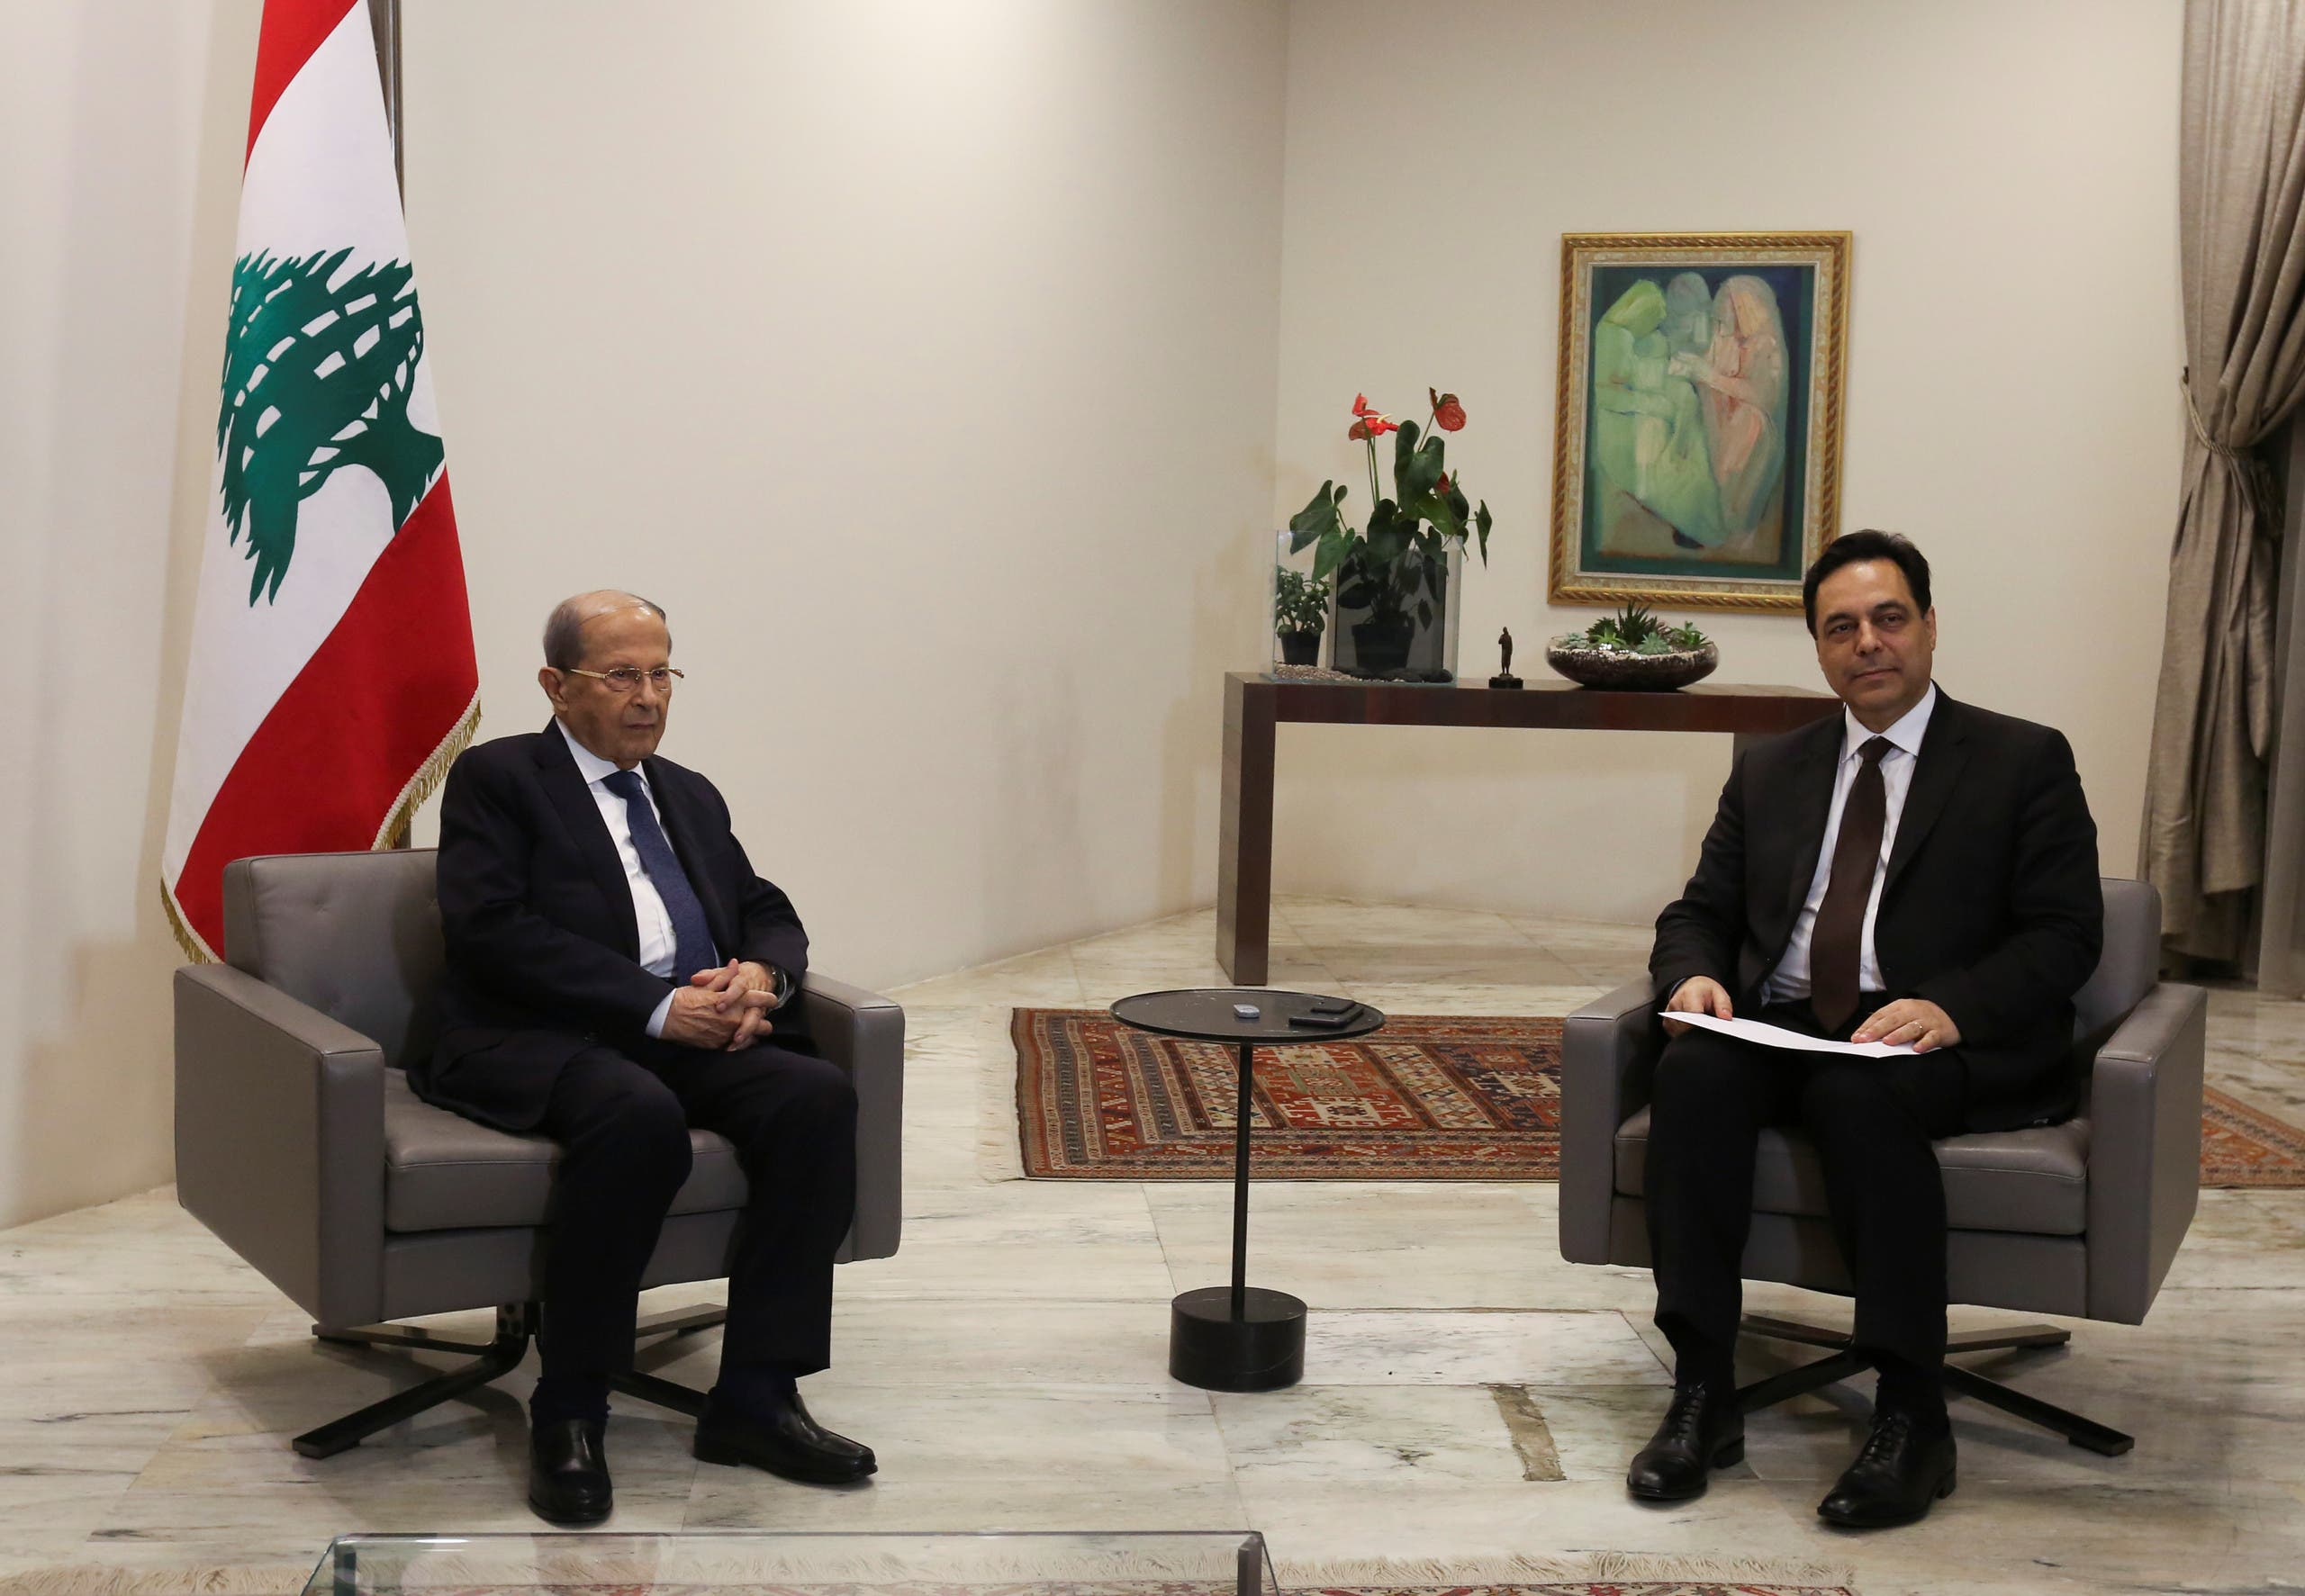 A file photo shows Lebanon's PM Diab meets Lebanon's President Aoun as he submits his resignation at the presidential palace in Baabda, Lebanon August 10, 2020. (Reuters/Aziz Taher)